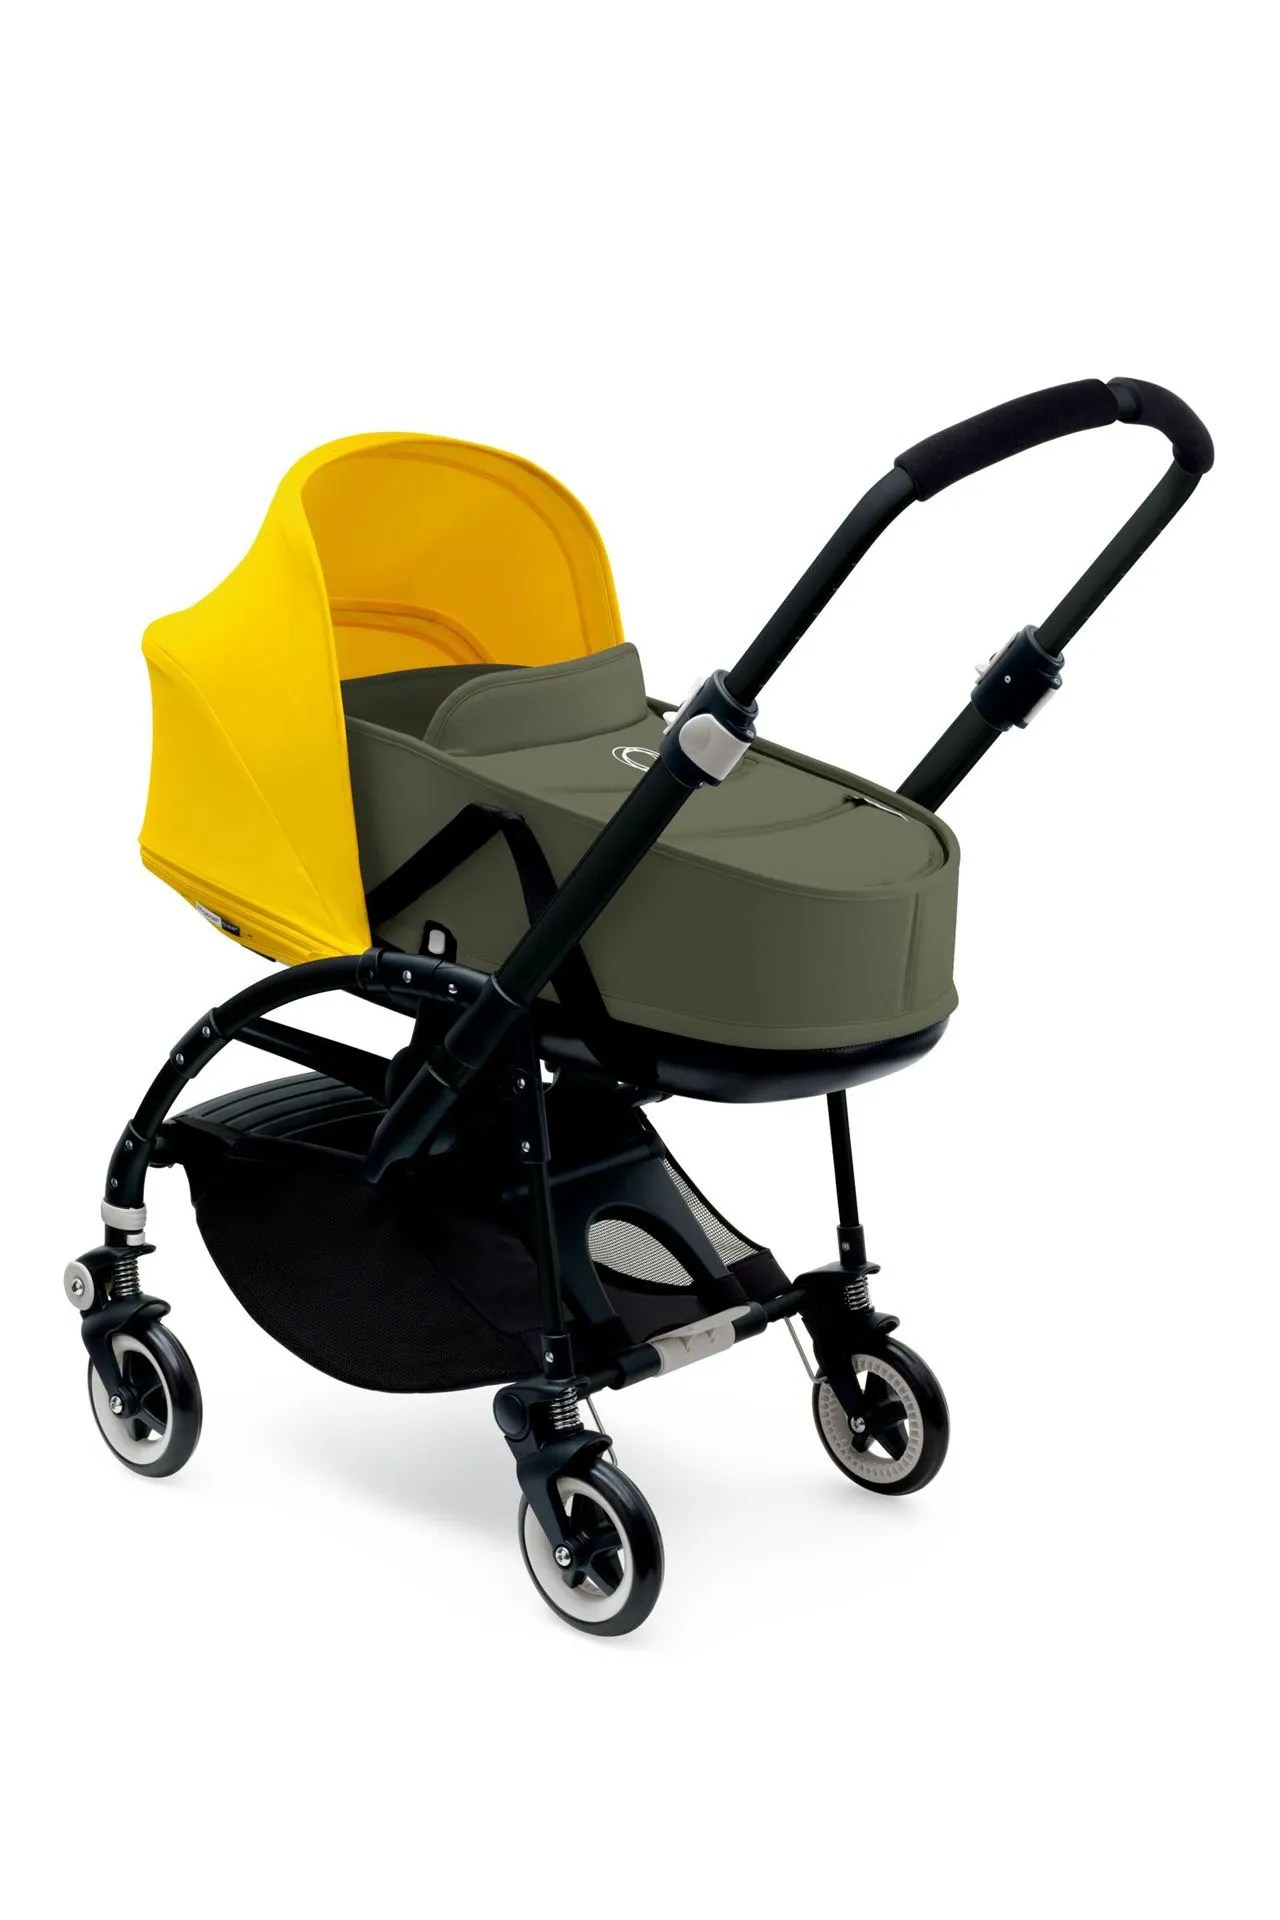 Bugaboo Bee With Buggy Board Bugaboo Bee3 And Baby Jogger Buggys Tested In The Gq